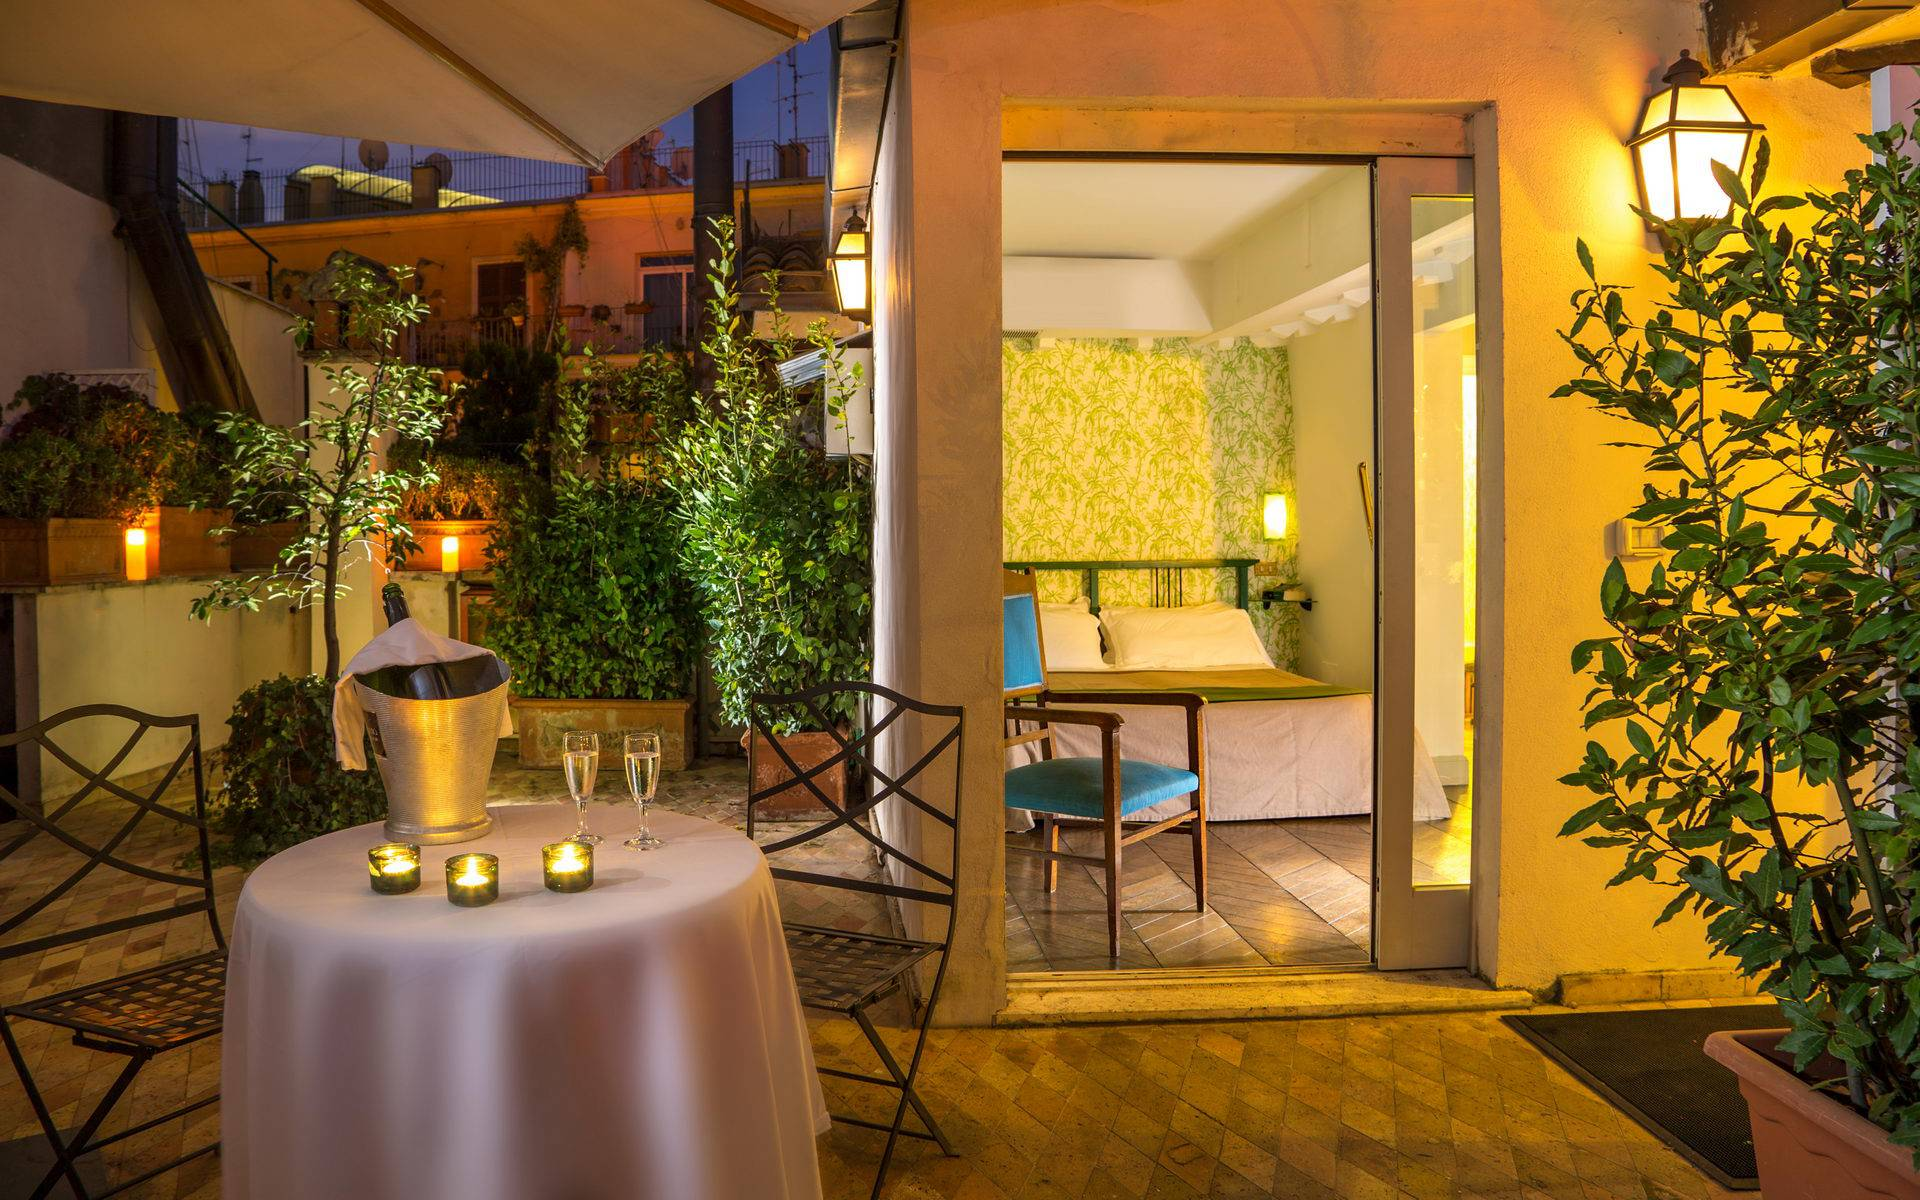 hotel-in-the-centre-of-rome-boutique-hotel-anahi-rome-suite-top-floor-room-balcony-champagne-22-2